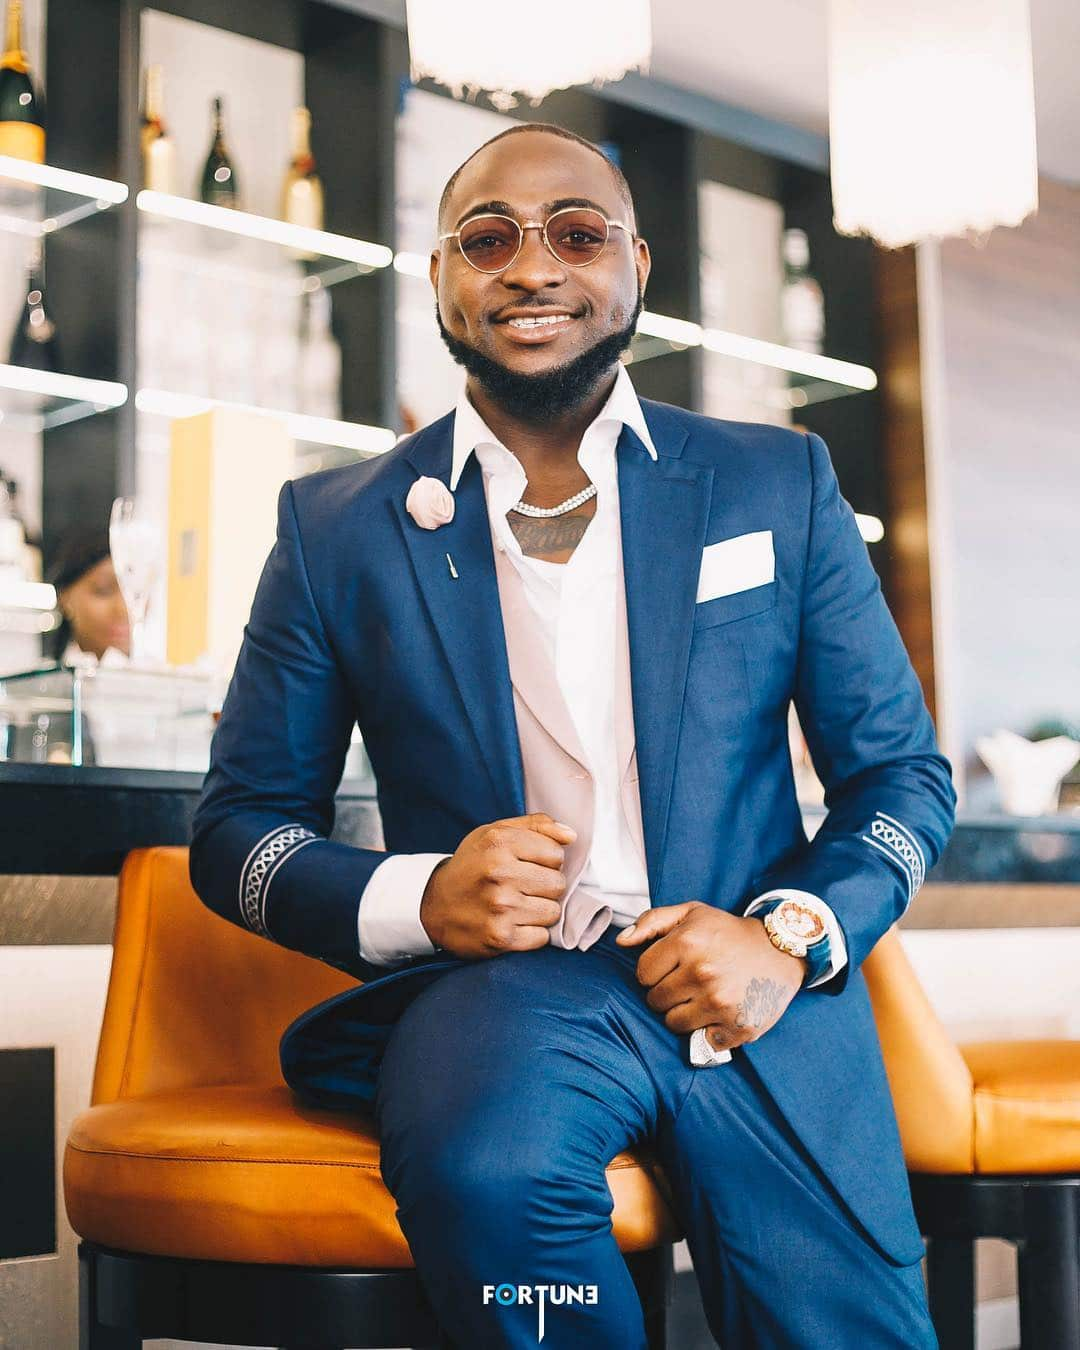 davido networth